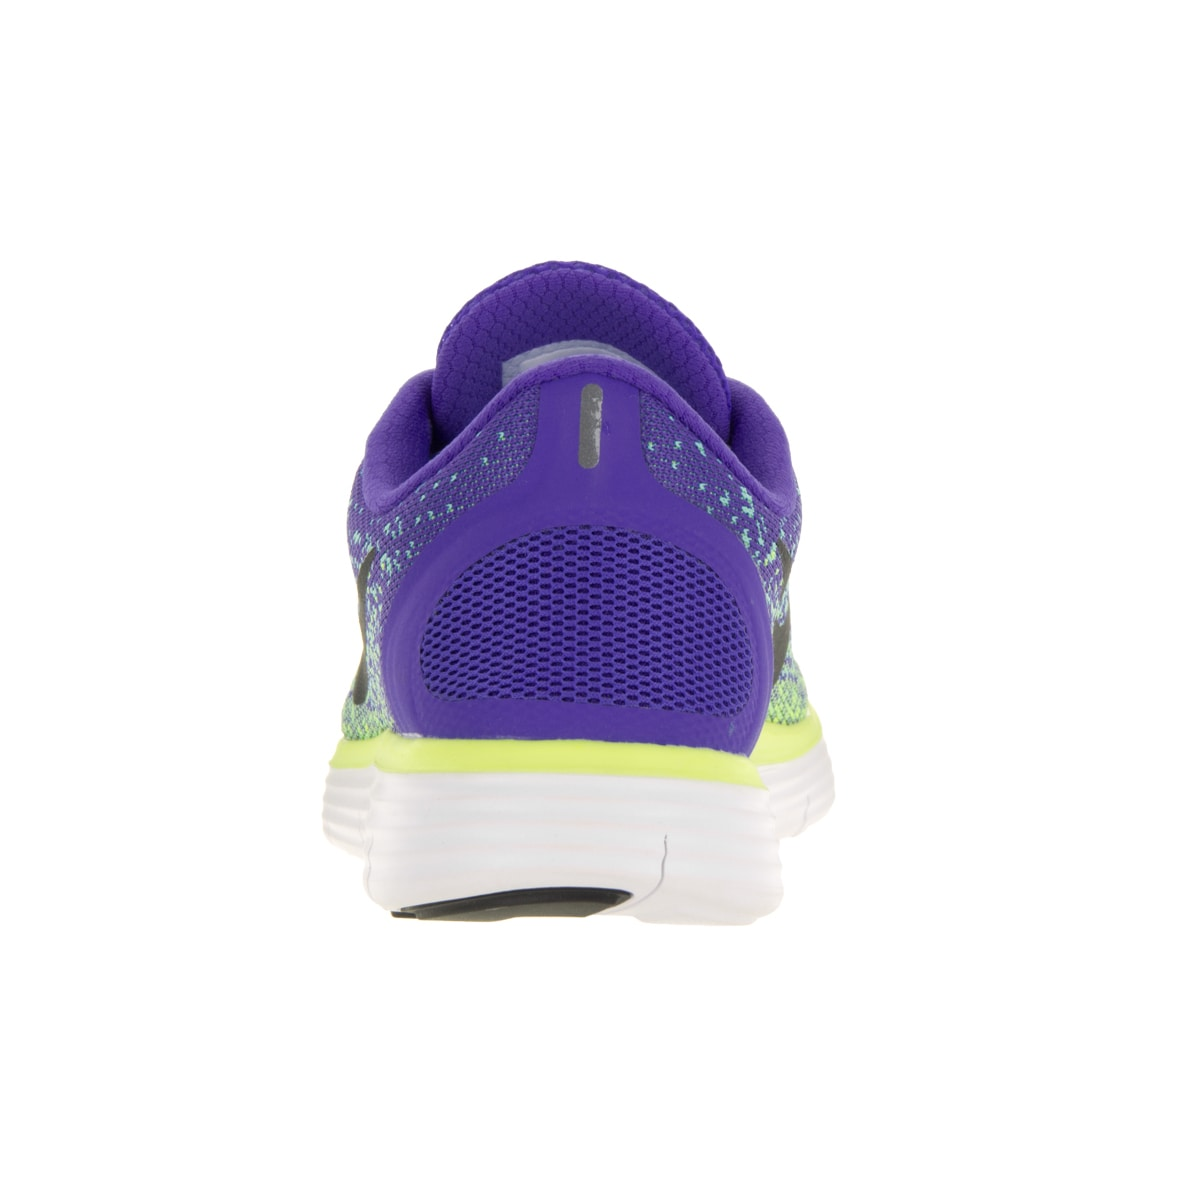 2068c9abf2b8 Shop Nike Women s Free Rn Distance Persian Violet Blk Grn Glw Vlt Running  Shoe - Free Shipping Today - Overstock - 13344167